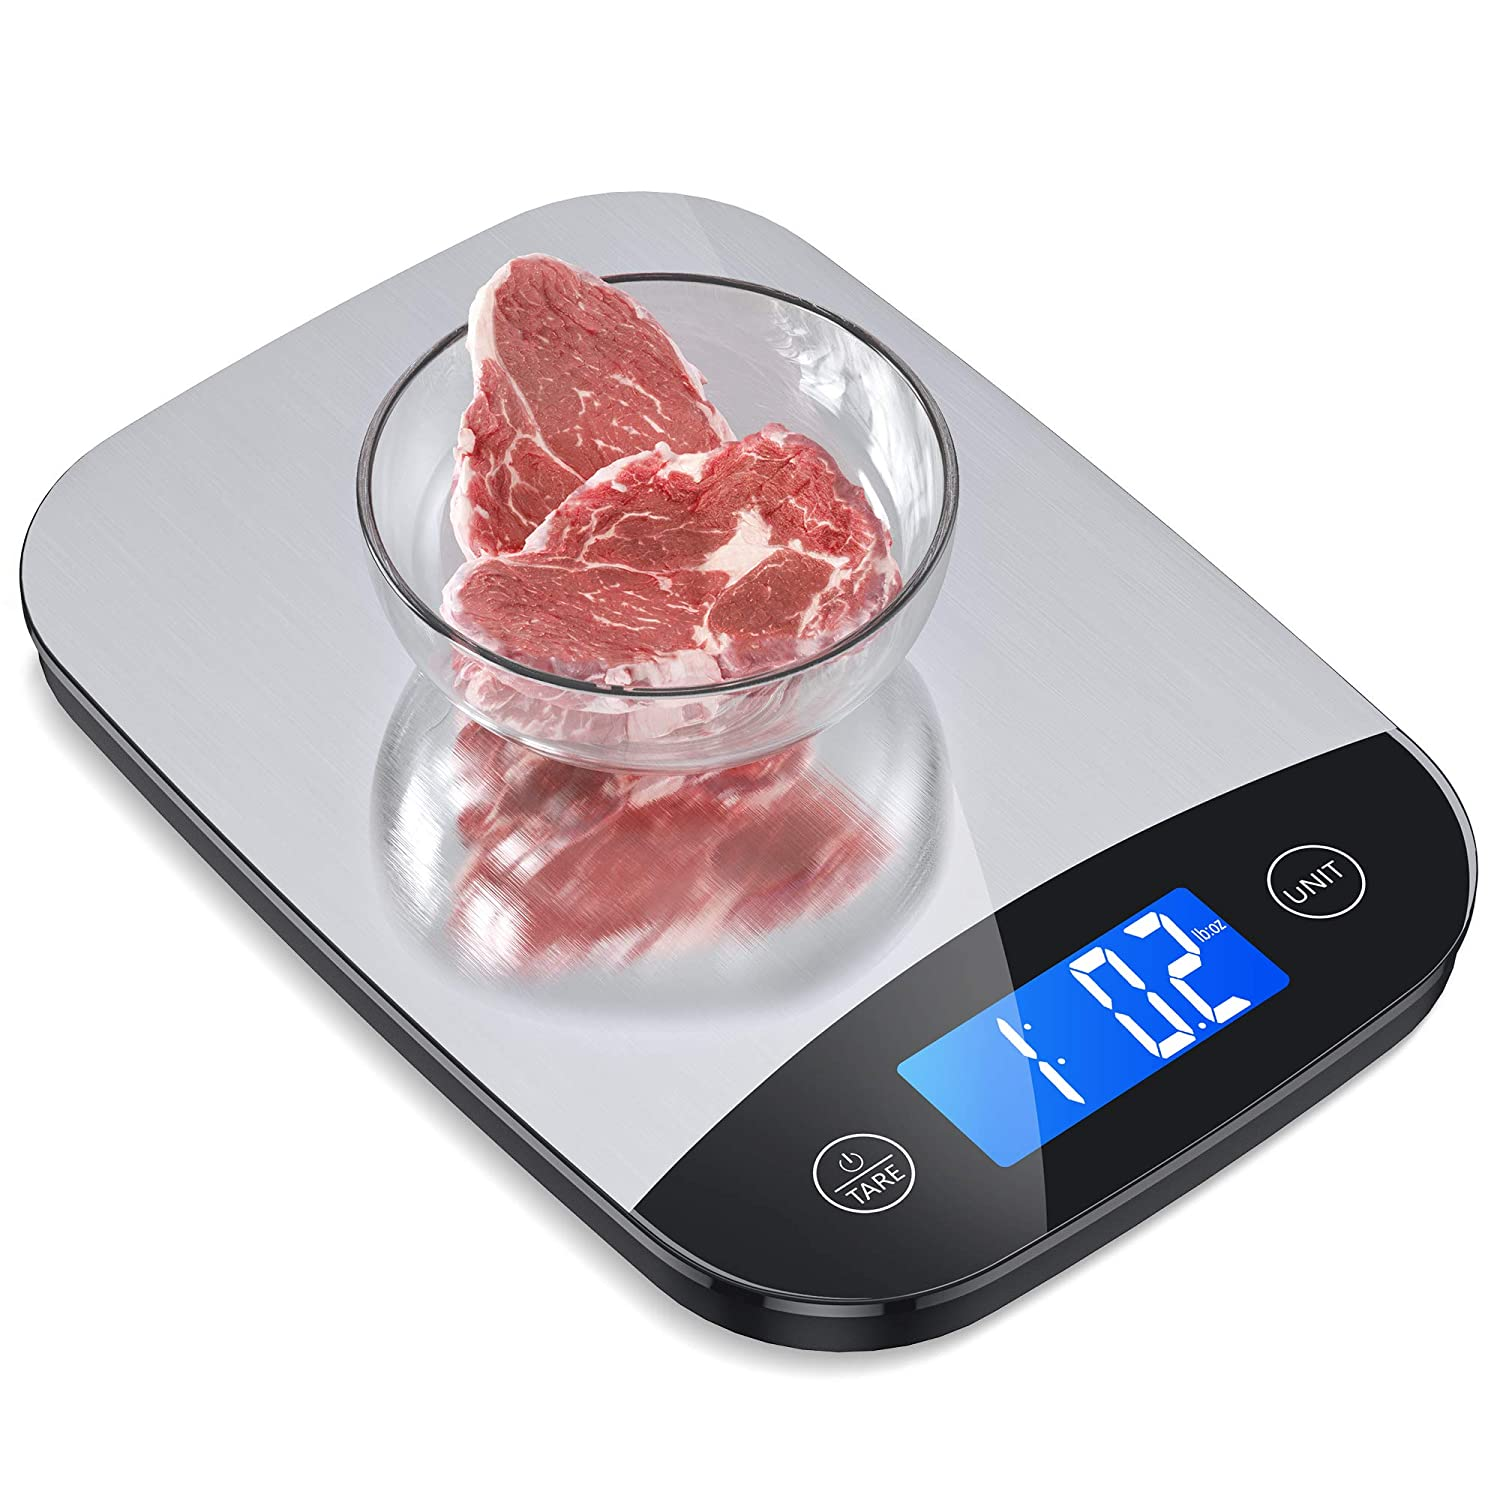 Nicewell Food Scale, 22lb Digital Kitchen Stainless Steel Scale Weight Grams and oz for Cooking Baking, 1g/0.1oz Precise Graduation,Tempered Glass New Version